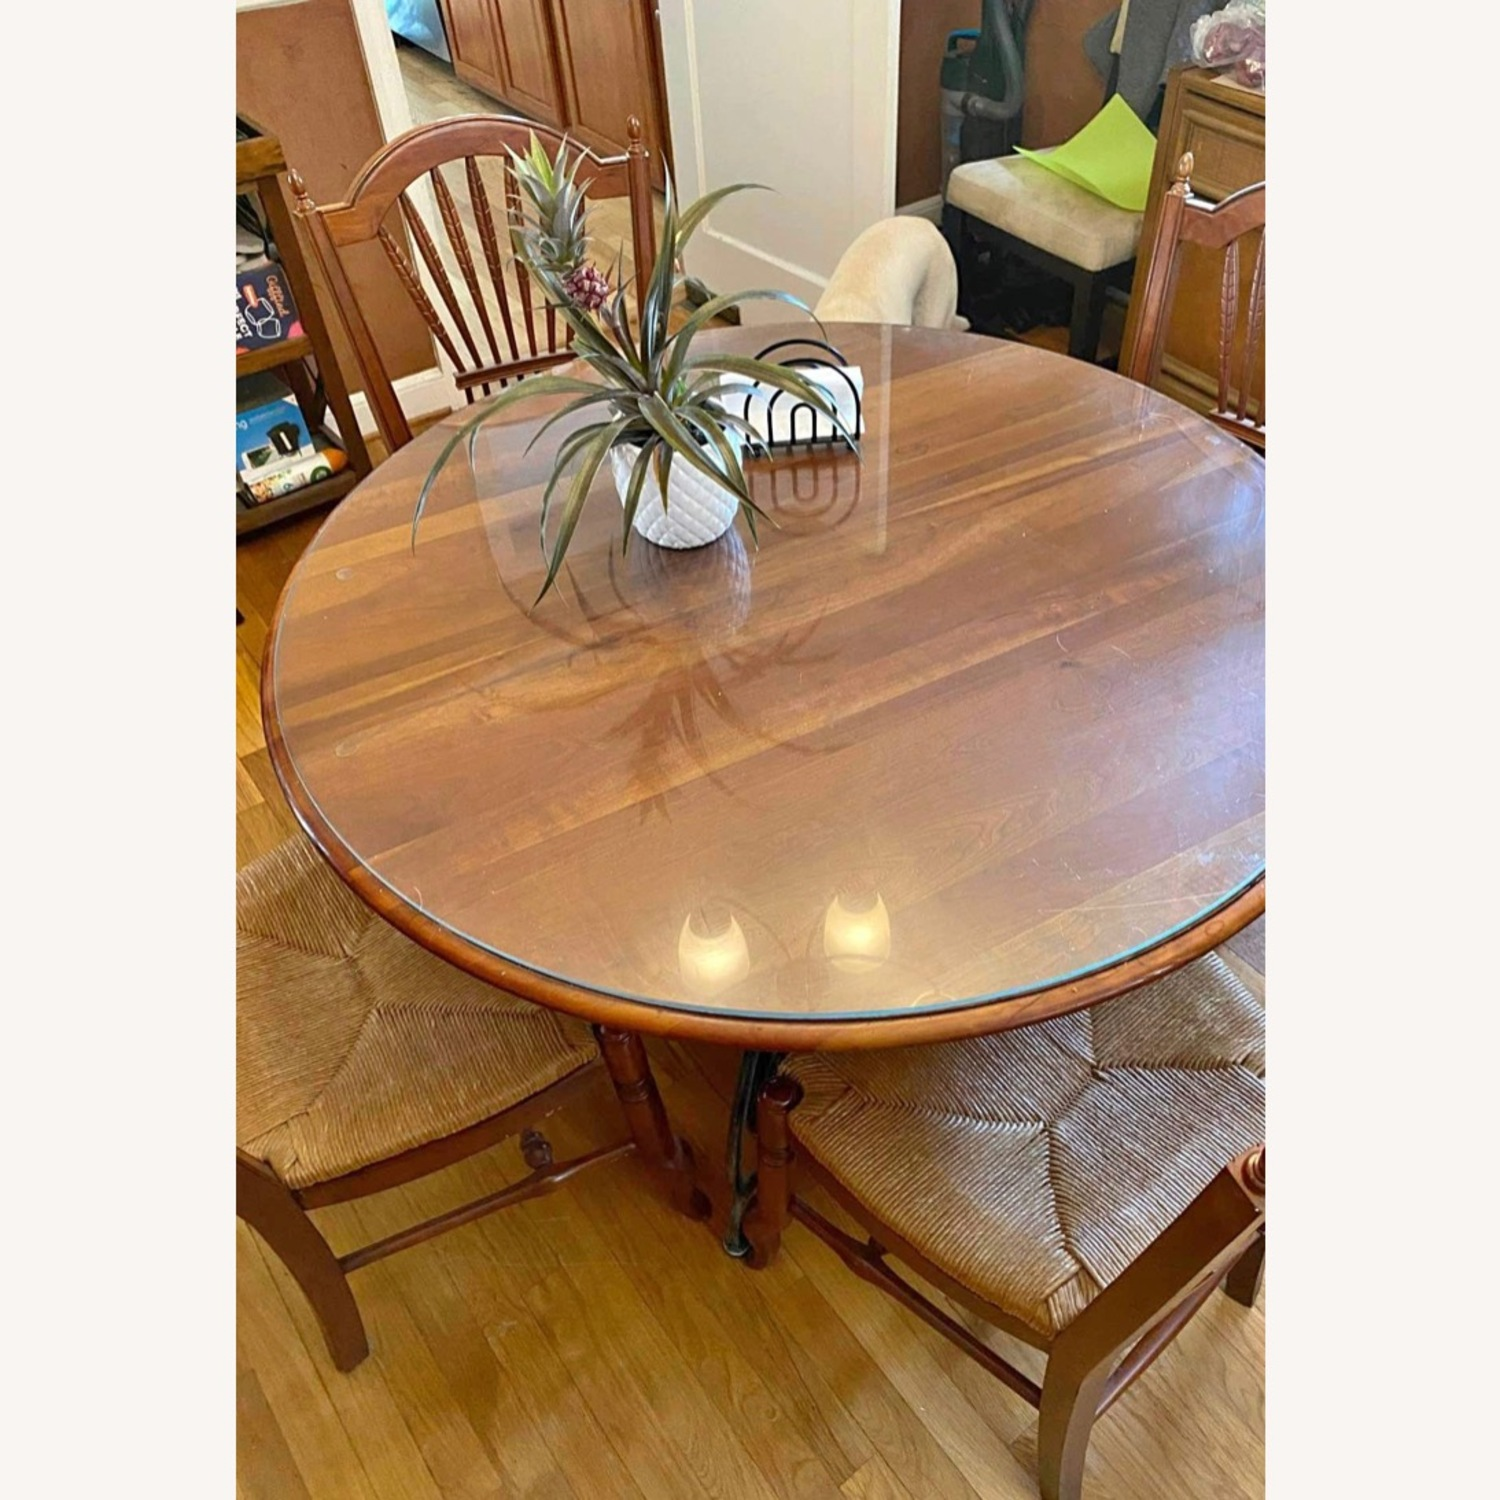 Ethan Allen Maisen Dining Table - image-1